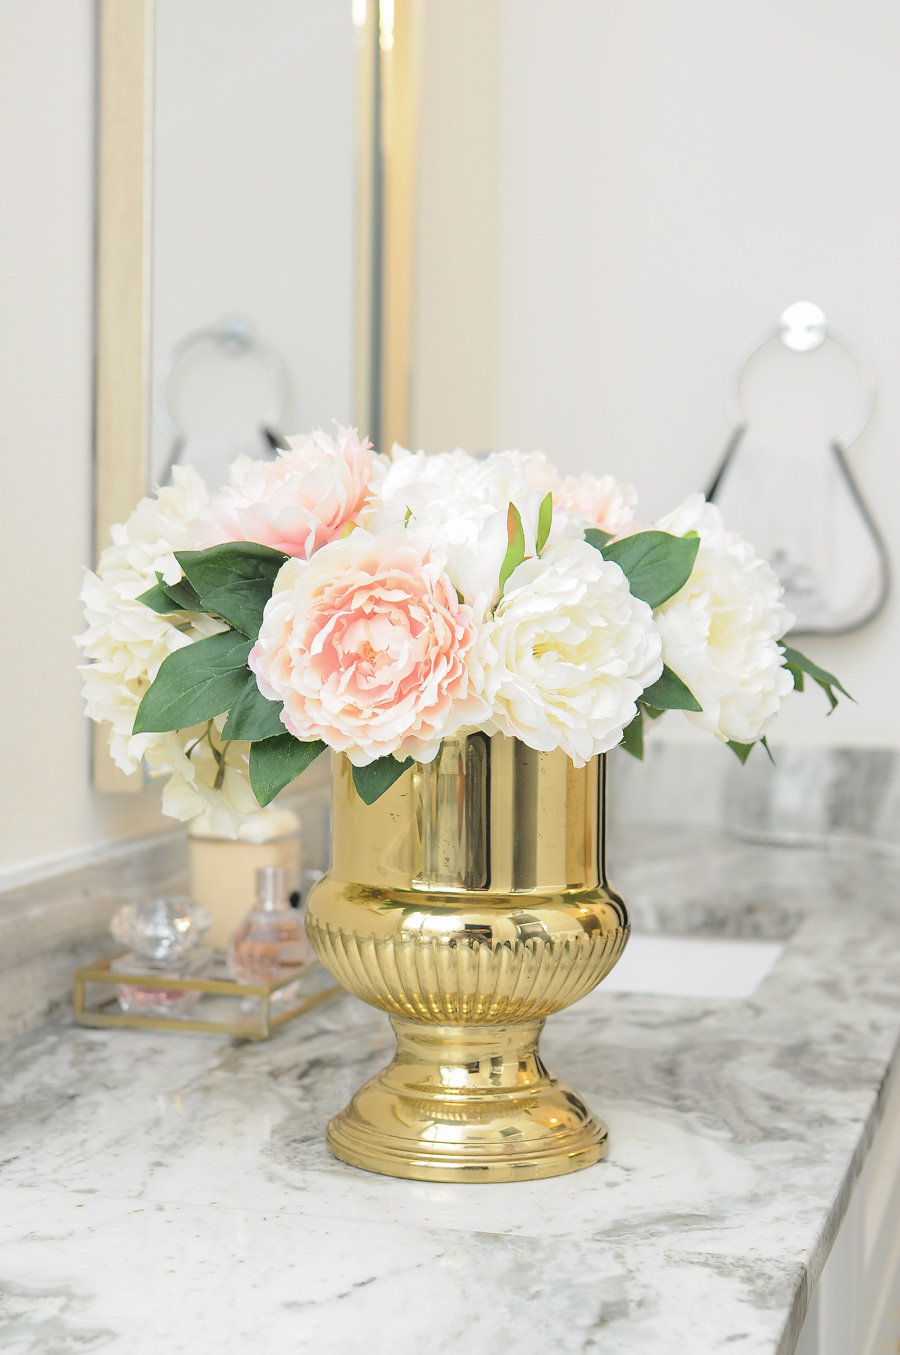 Faux peonies look beautiful and add a dash of glam when paired with a vintage brass urn in this master bathroom suite.